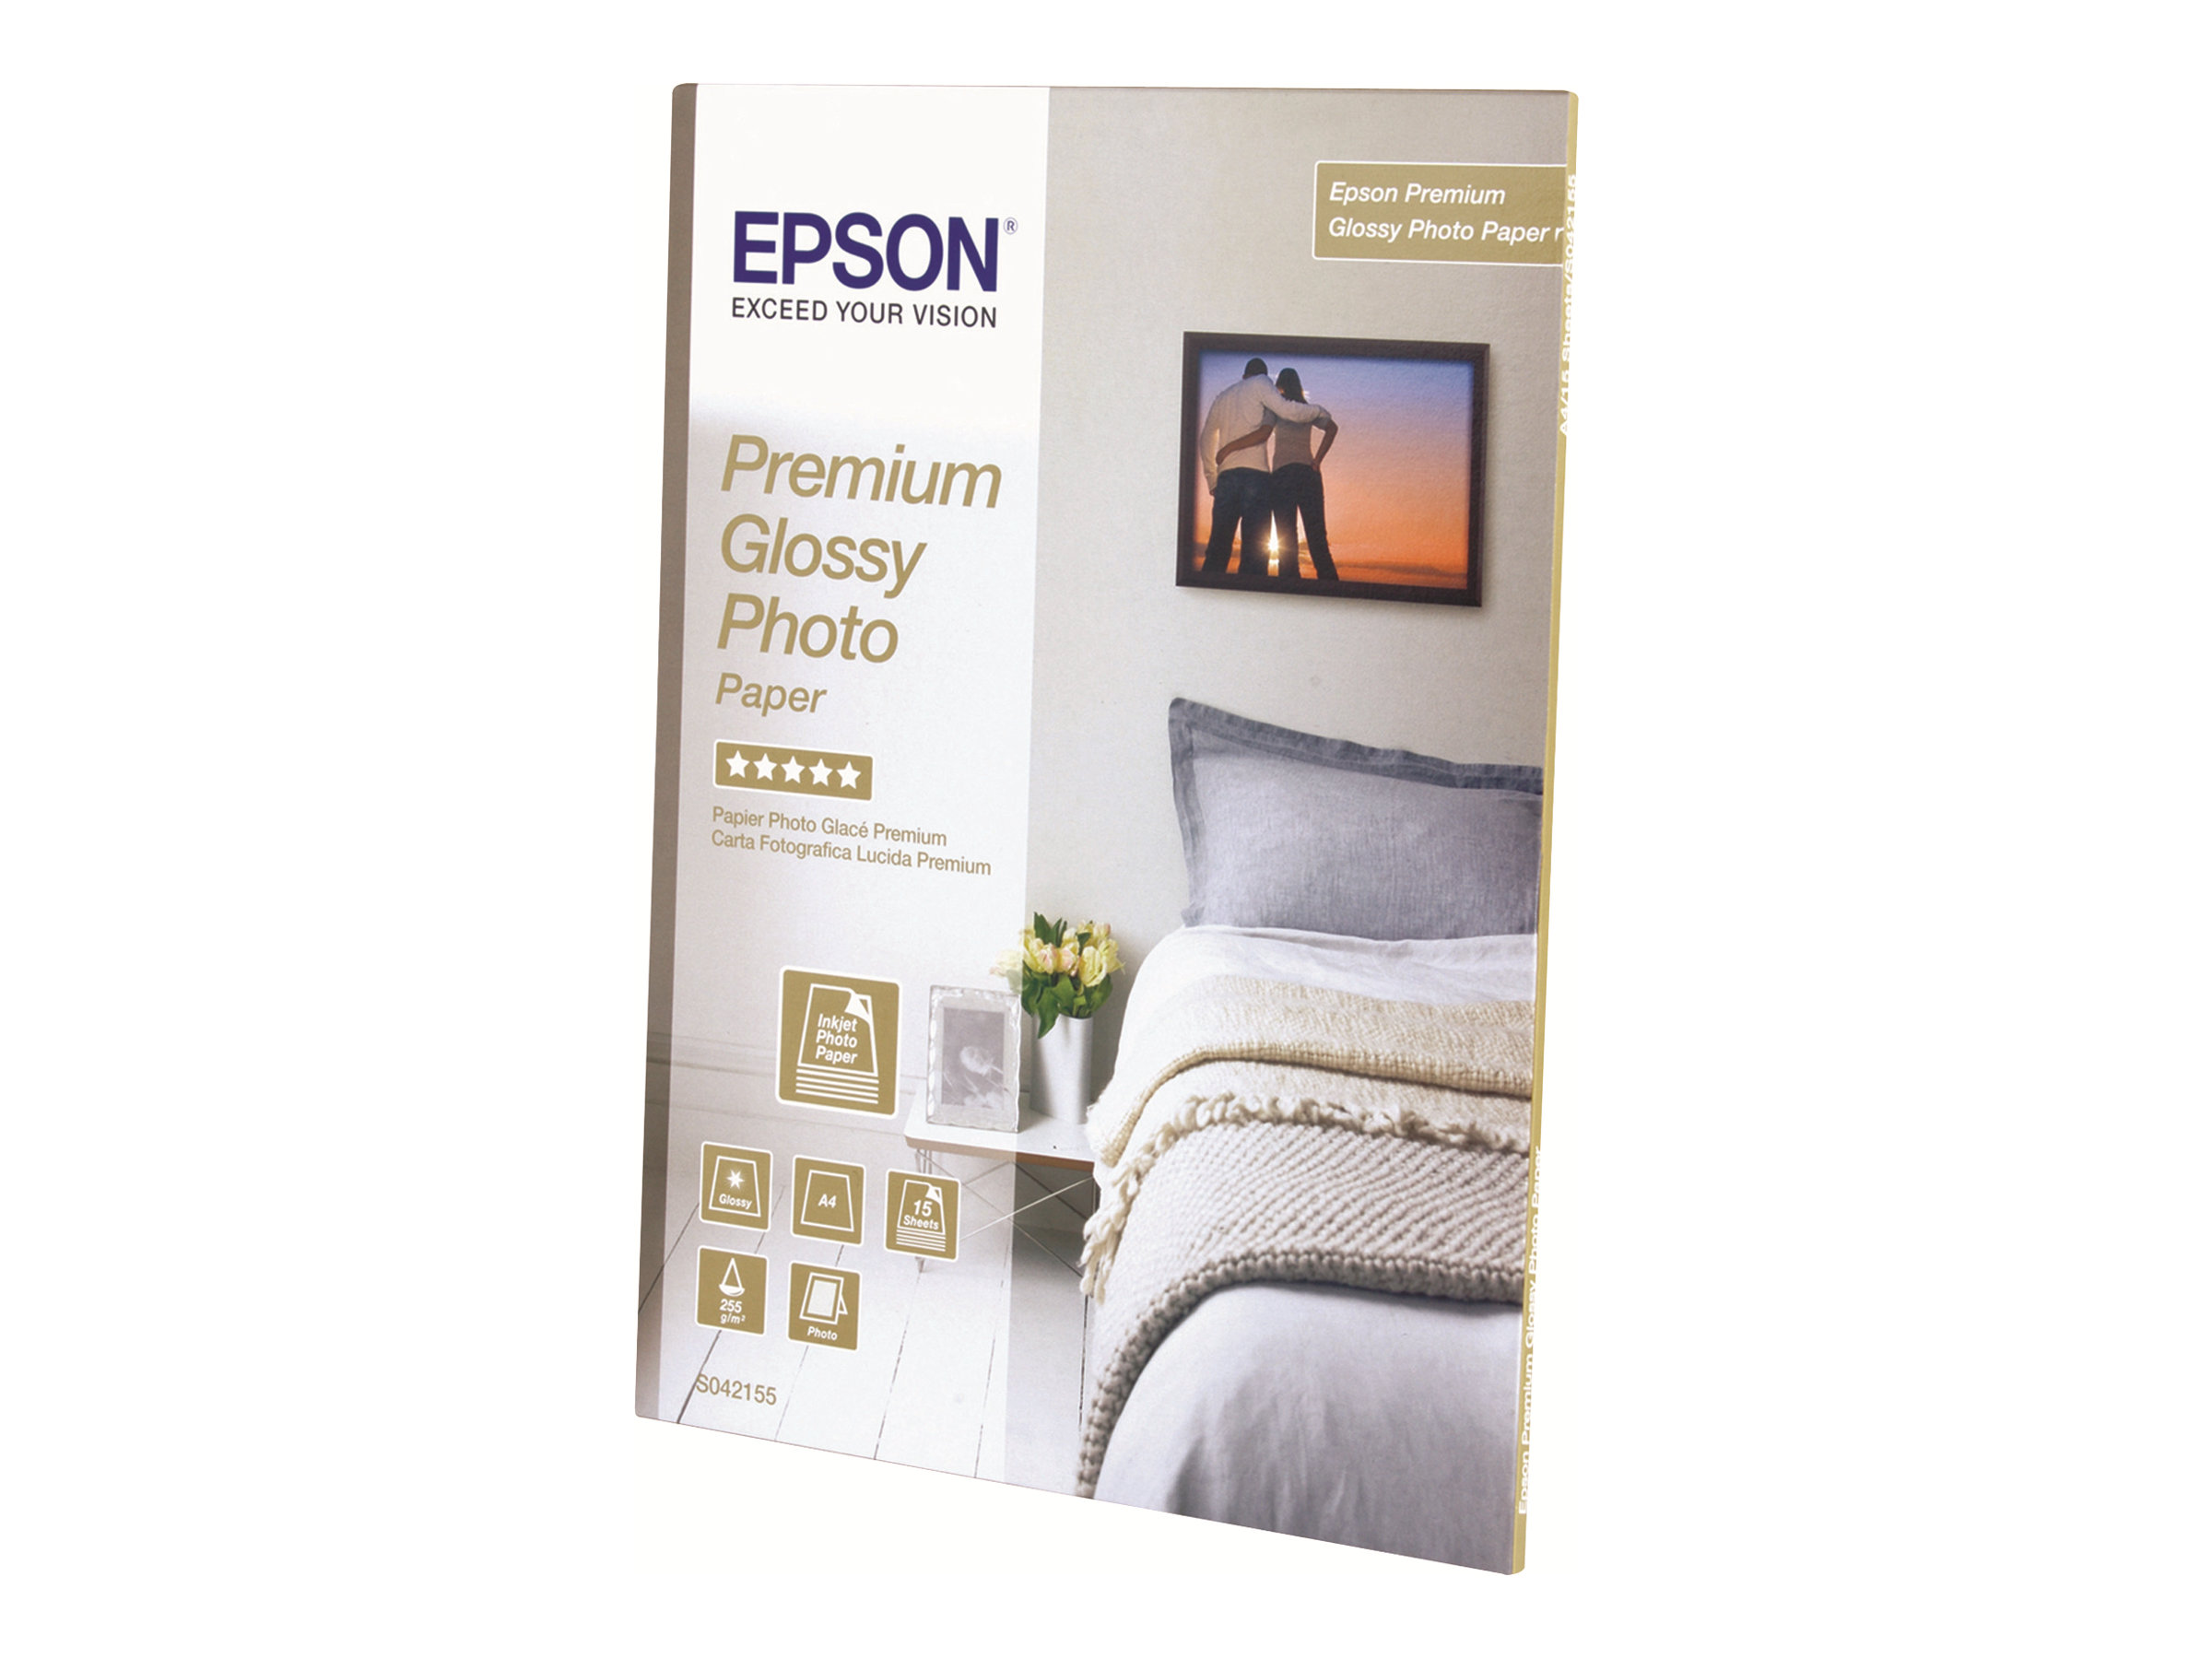 Epson Premium Glossy Photo Paper - papier photo brillant - 30 feuille(s)